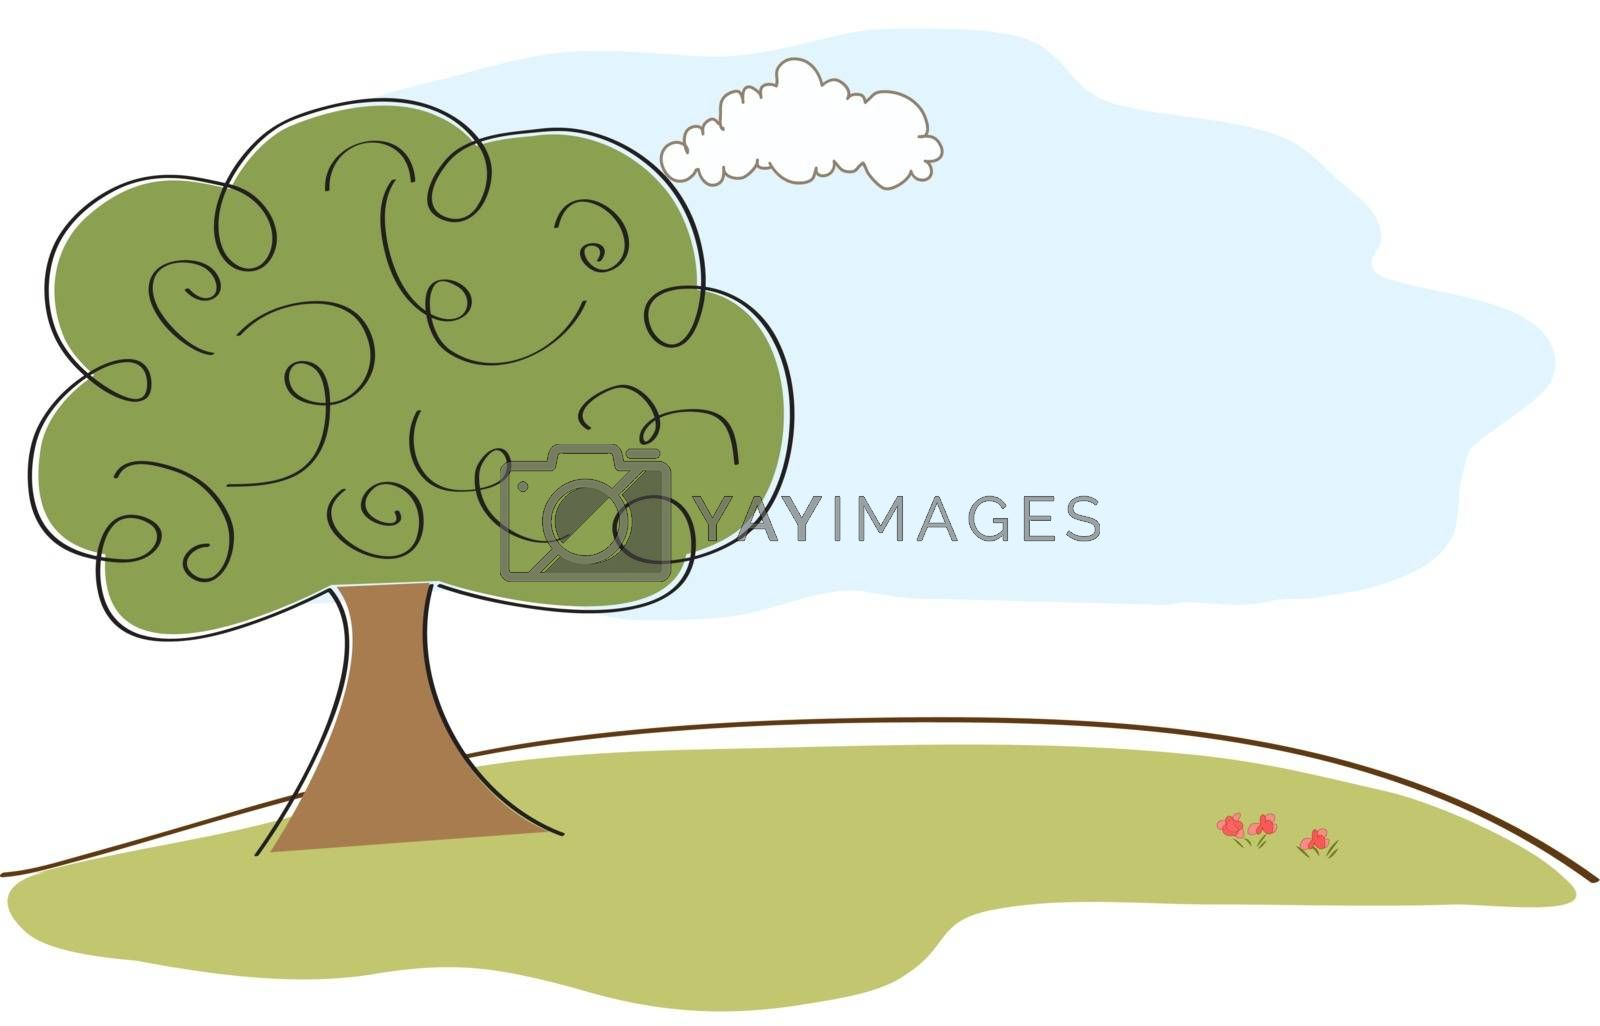 landscape with tree, illustration in vector format